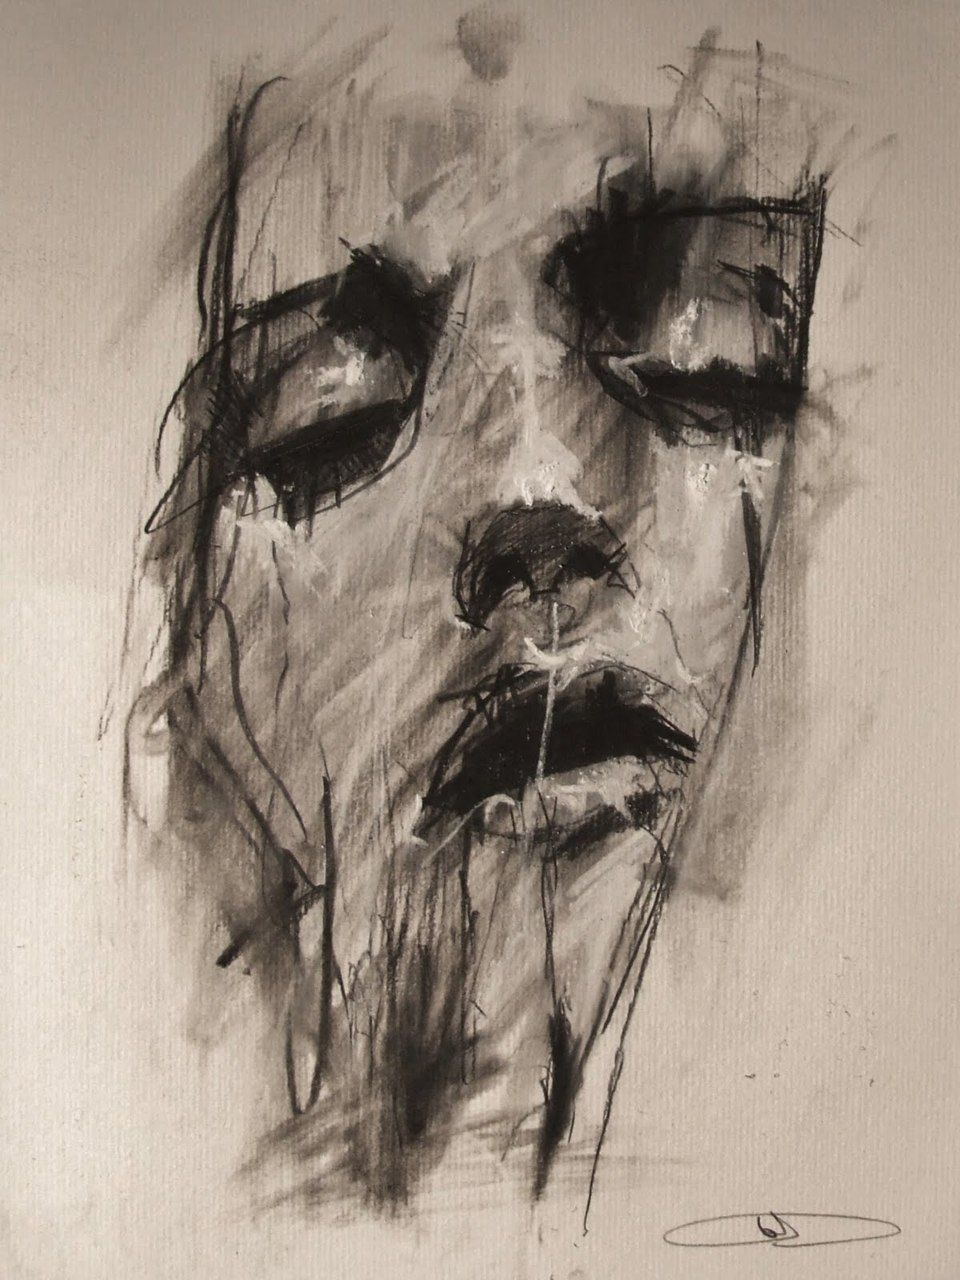 """Willful Self-Deception 3"" by Guy Denning, 24 x 32cm, conte and chalk on paper"